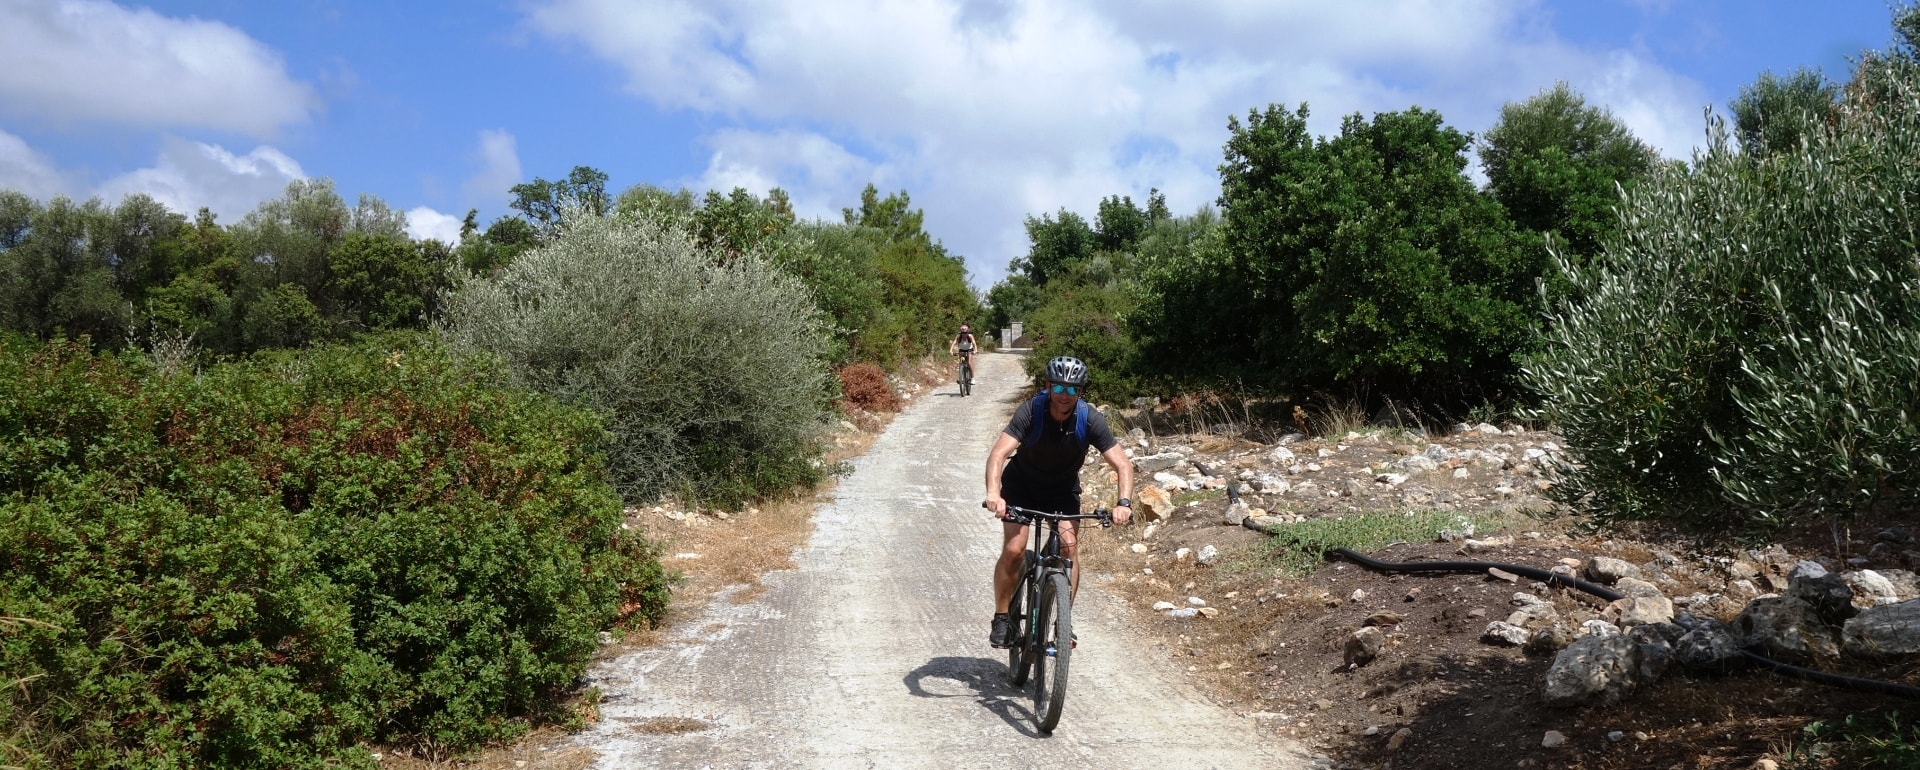 Lagoon ebike tour Crete Hersonissos Malia Stalis Analipsi Gouves Cube reaction bikes-after the church stop-min